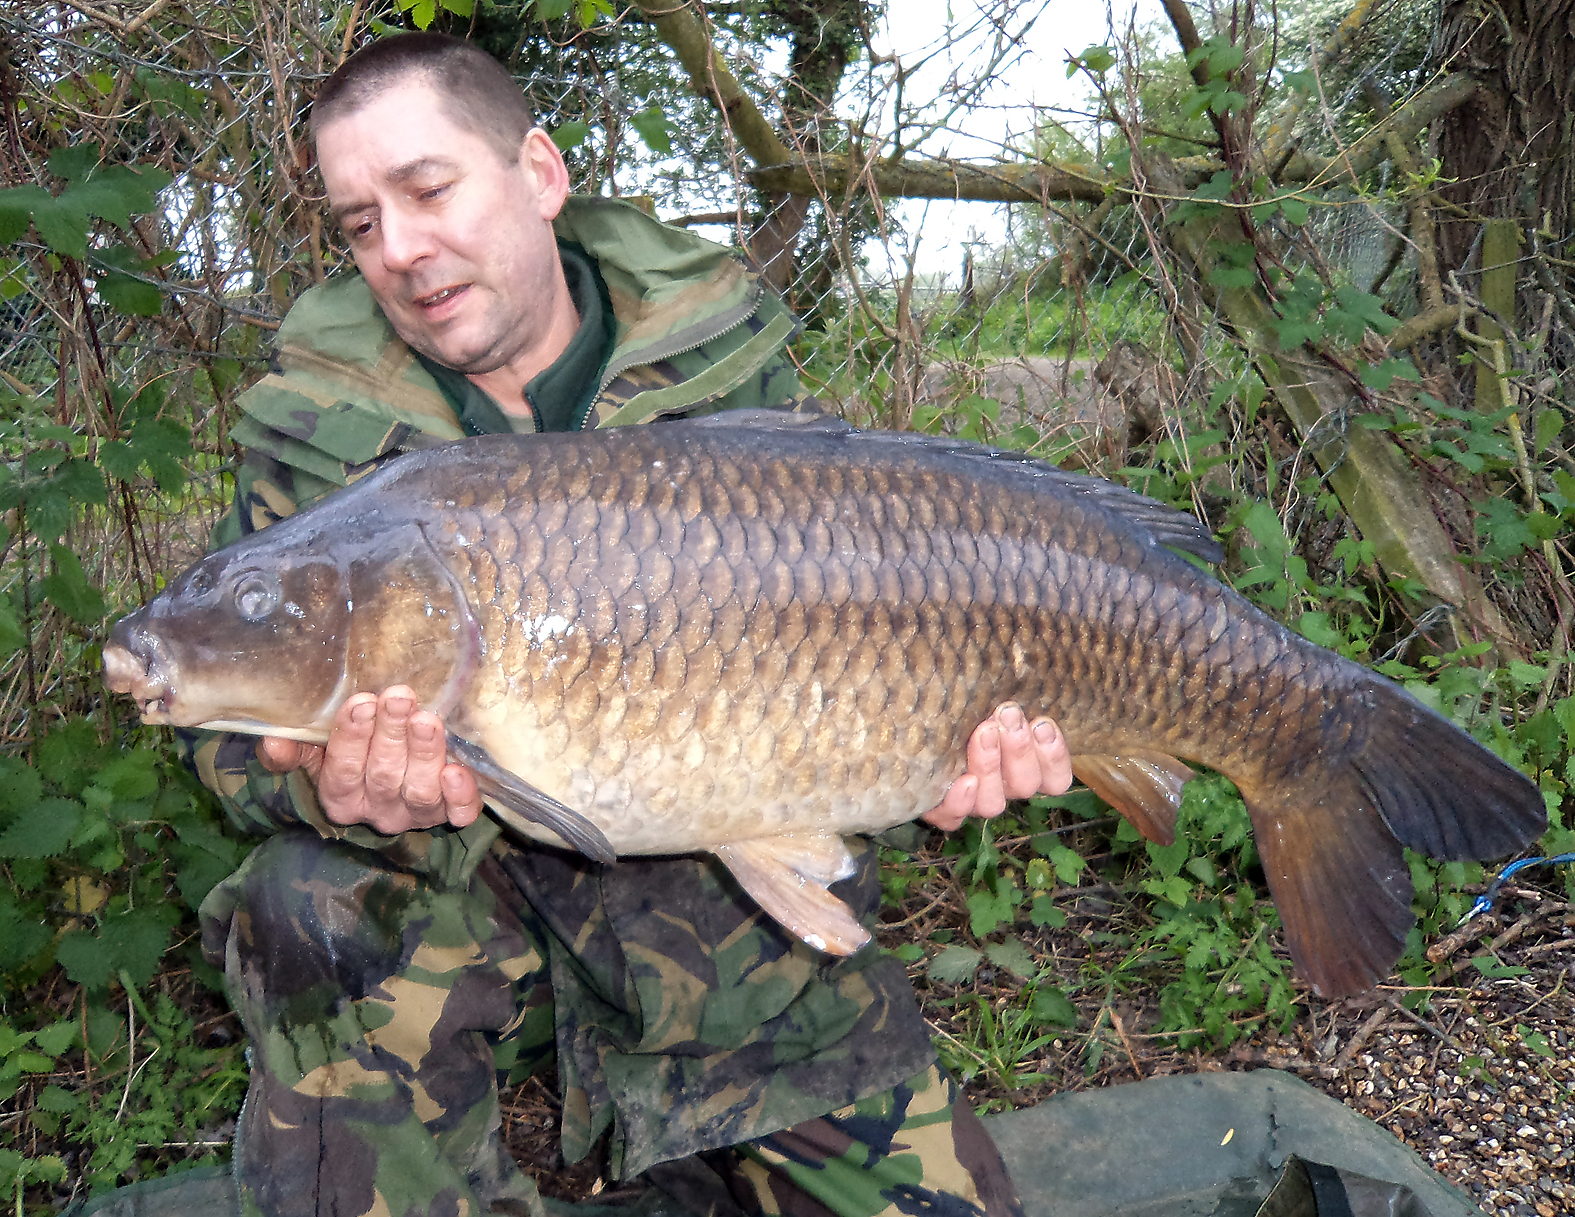 First of three during the session, Gary with a 23lb 5oz common